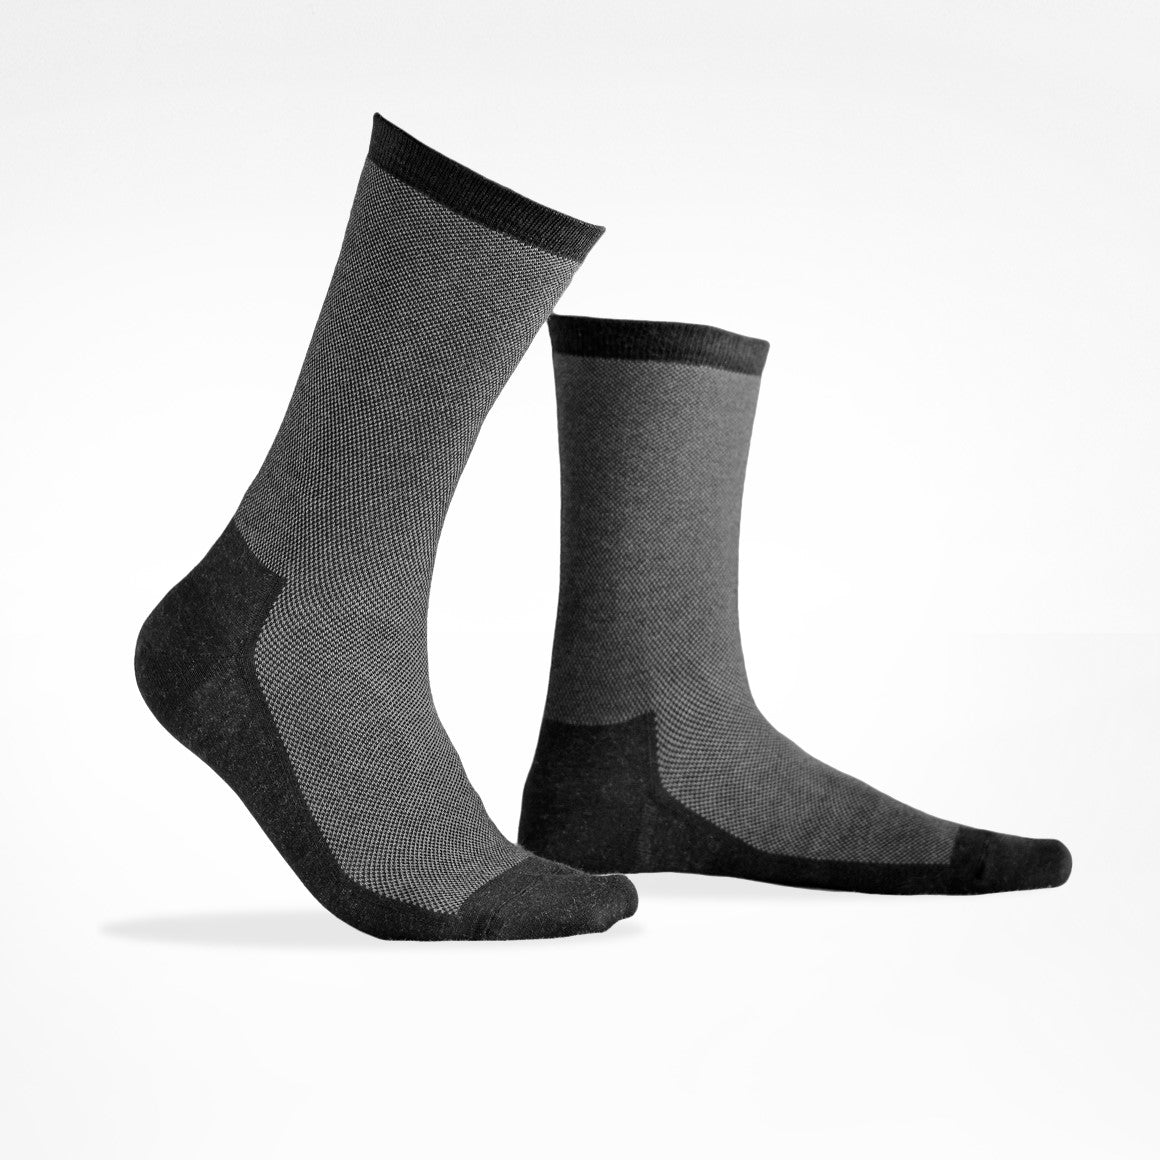 Silver Socks - 2 Pairs,  Original Calf Length - Sweat Guard Footcare